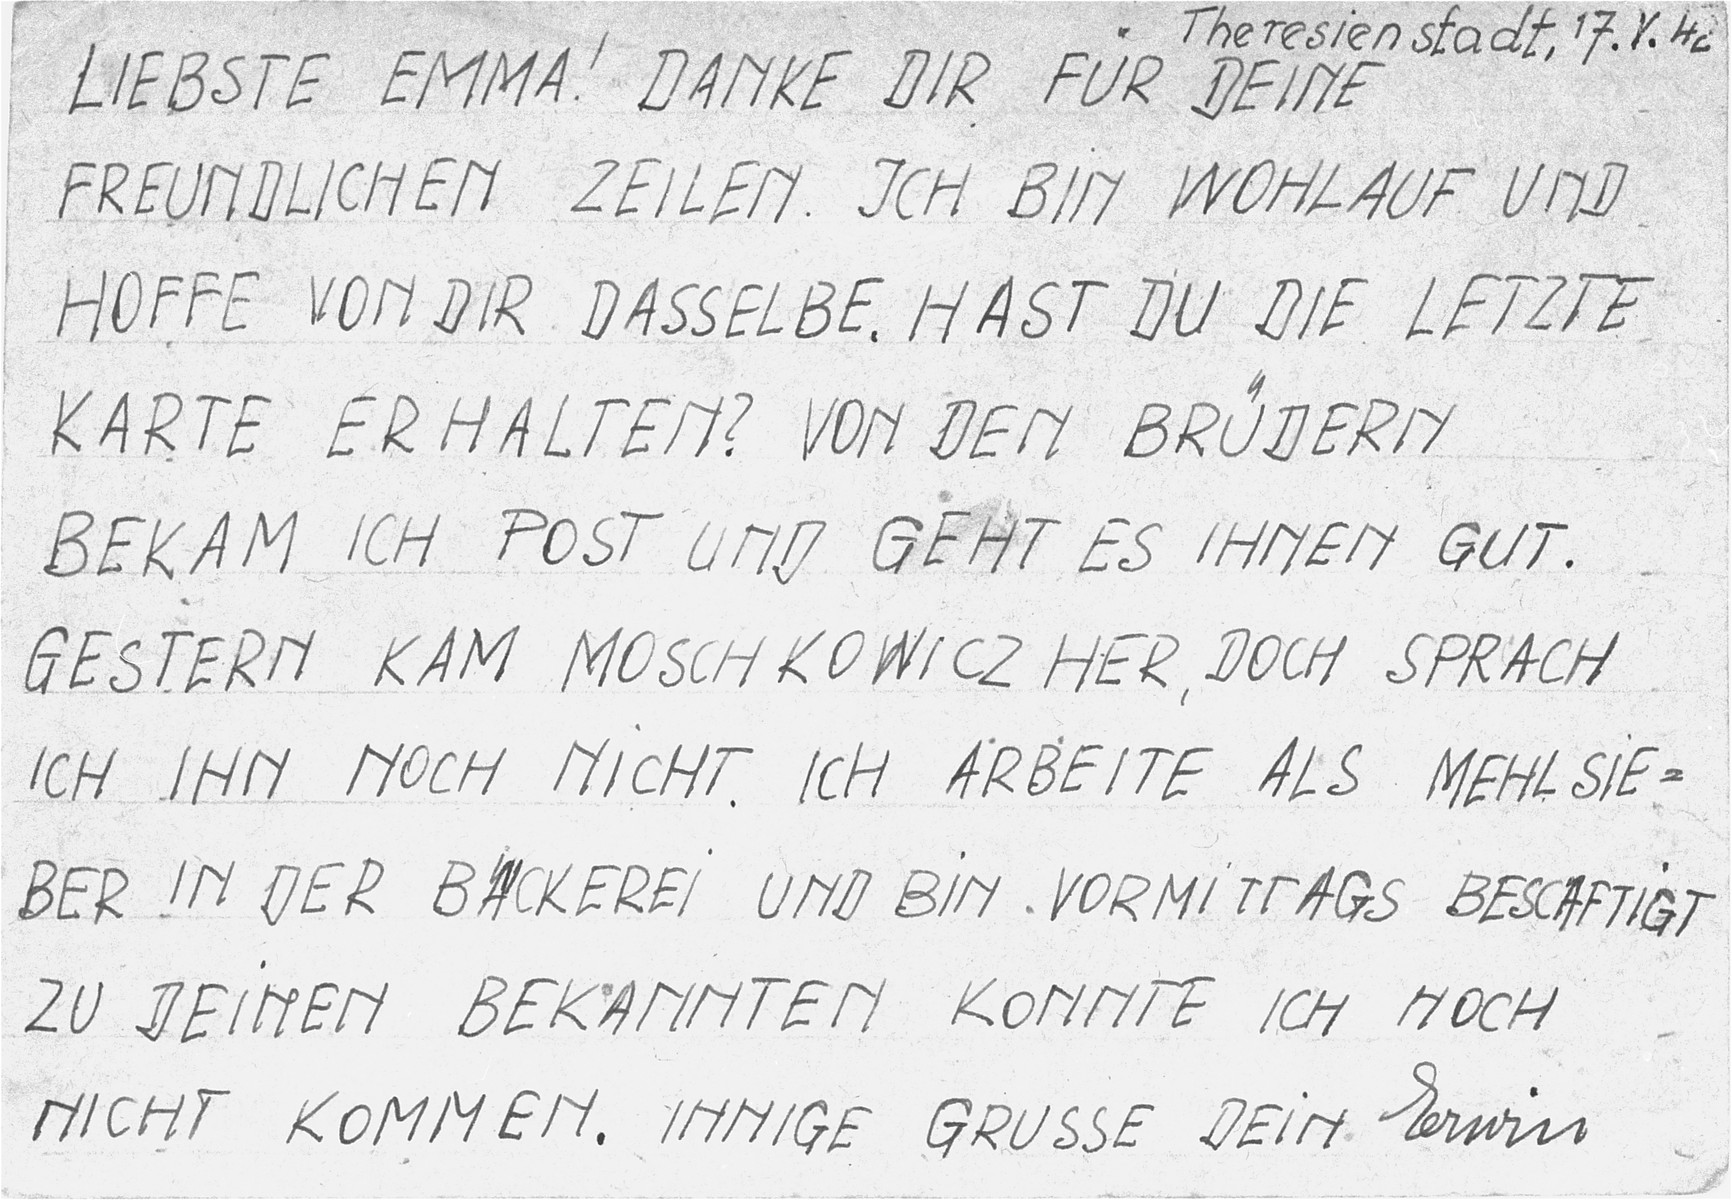 """The back of a postcard sent from Erwin Leser, a German Jewish prisoner in Theresienstadt, to Emma Sandel.    It reads: """"Dearest Emma!  Many thanks for your friendly lines.  I am well and hope you are the same.  Did you receive the last postcard I sent?  I got a letter from the brothers and all is well with them.  Moschkowicz came here yesterday, but I have not spoken with him yet.  I am working as a flour sifter in the bakery and occupied in the mornings with this.  I have not been able to see your acquaintances.  Yours, Gerwin."""""""